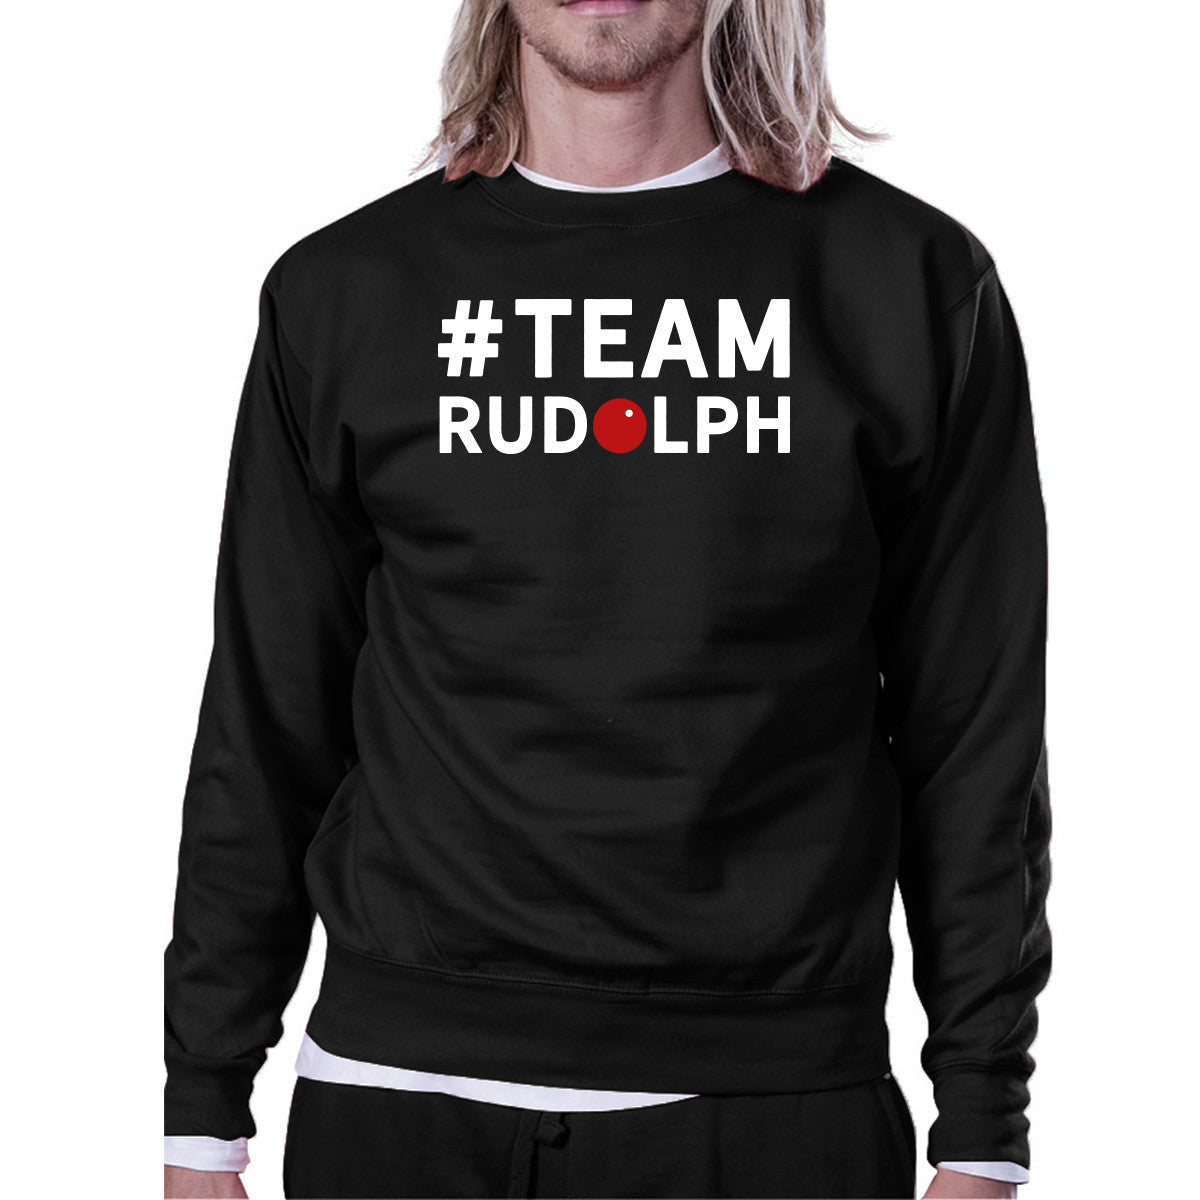 Team Rudolph Sweatshirt Family Or Group Matching Christmas Gift ...